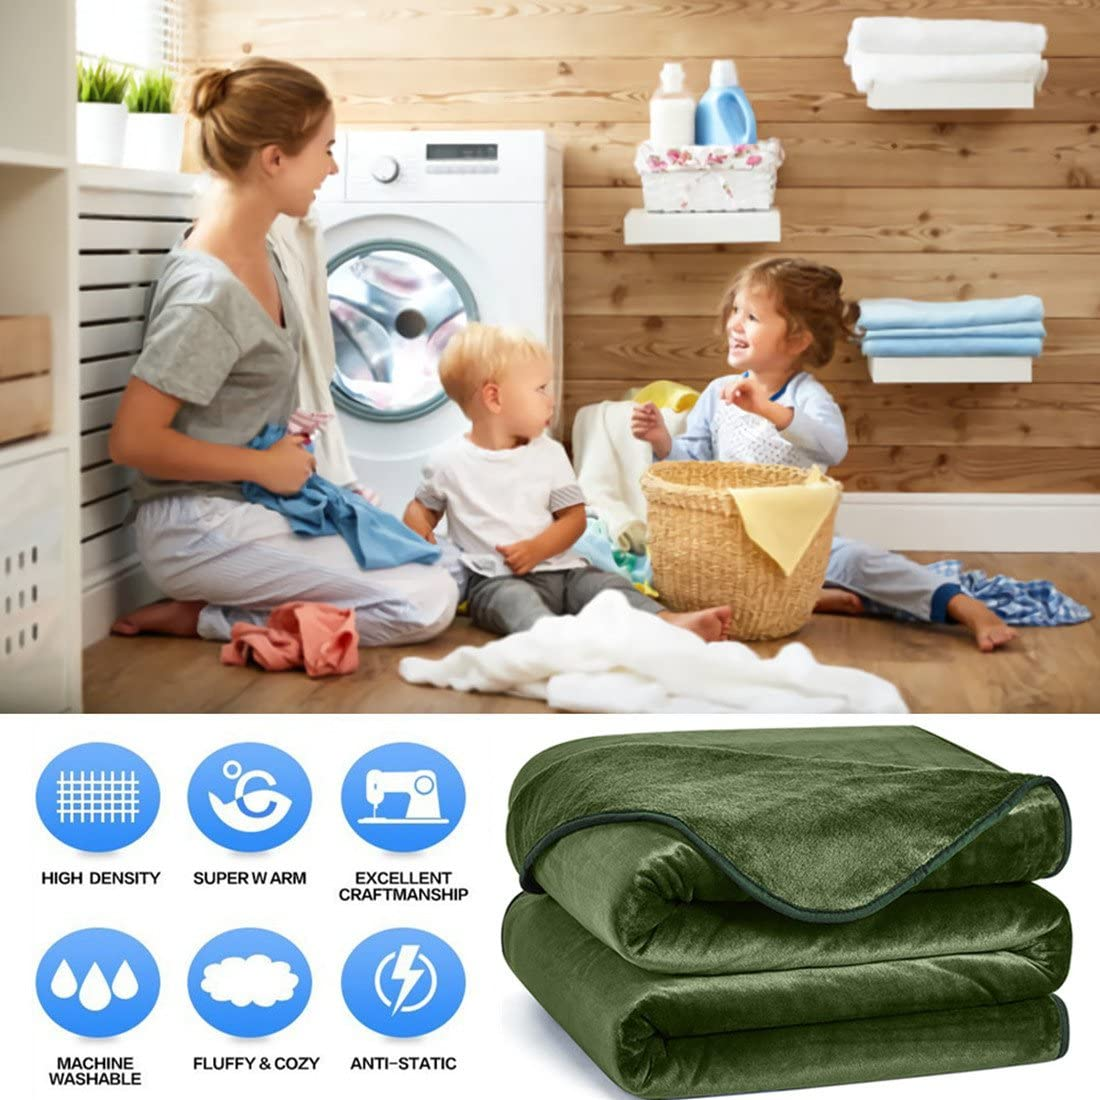 Winter Soft 350GSM Warm Blankets Thick Blanket for Home Bed Blankets King Size Charm Heart Fleece King Blanket Chocolate 90/×108 in